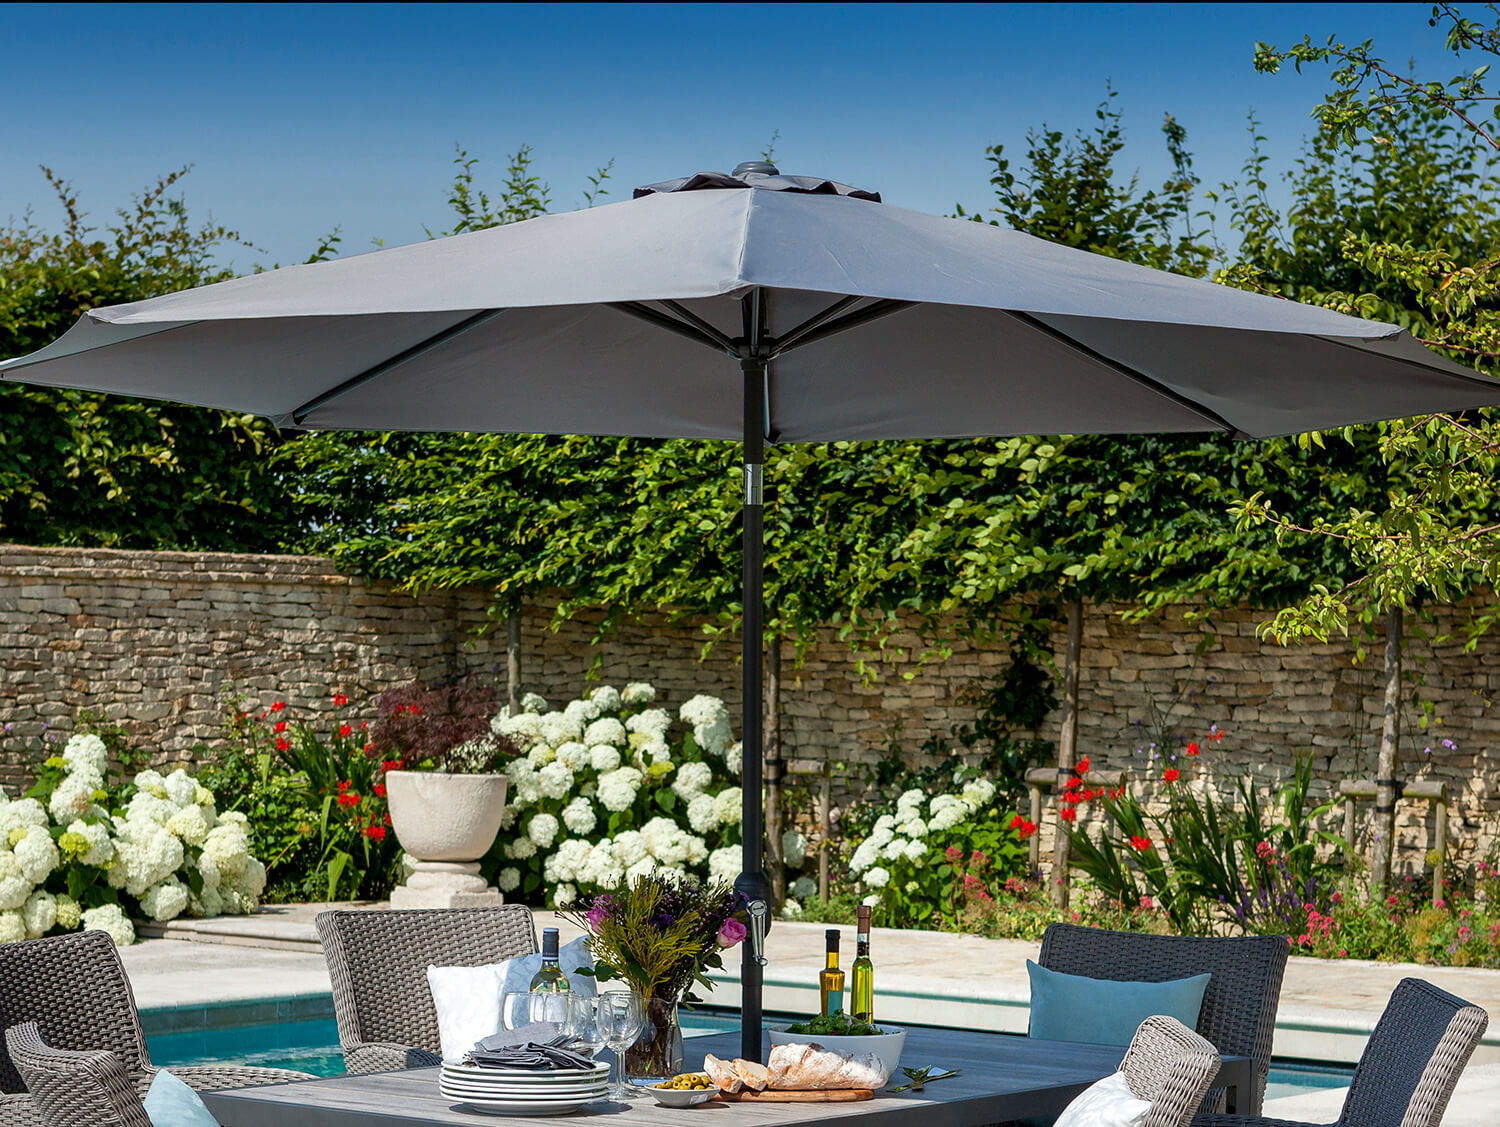 Hartman Atlanta 3m Parasol in Dusk - £70 | Garden4Less UK Shop